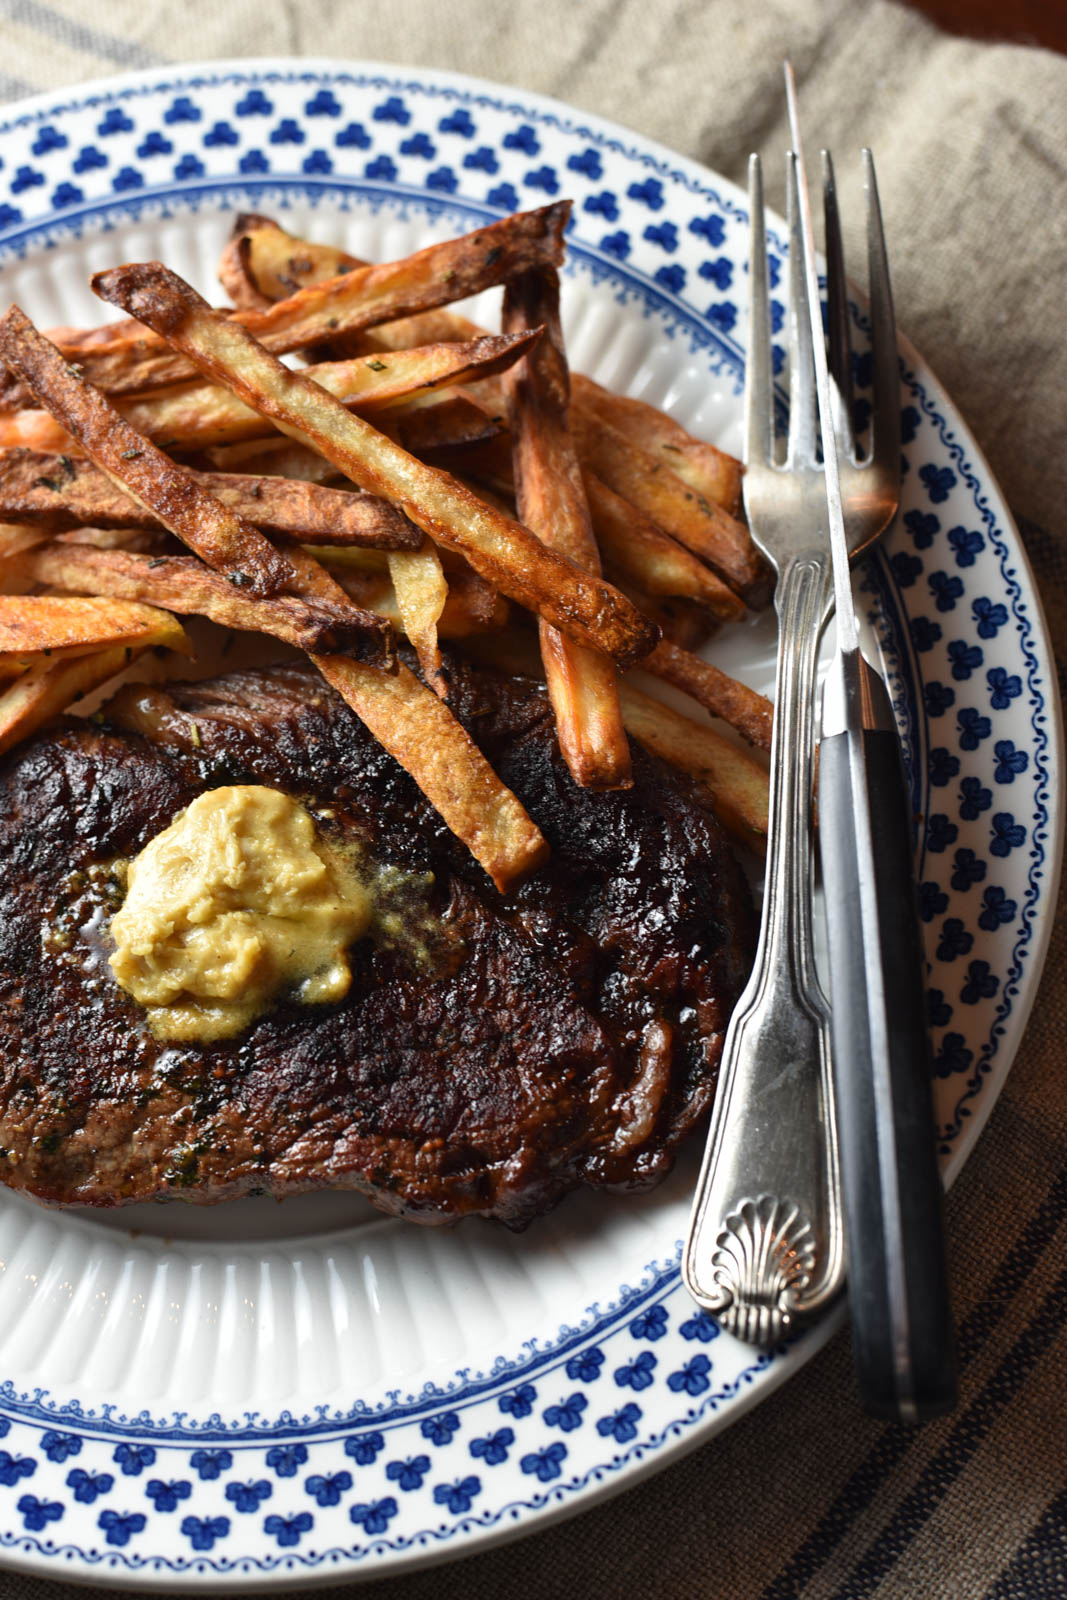 Steak with Mustard Butter and French Fries